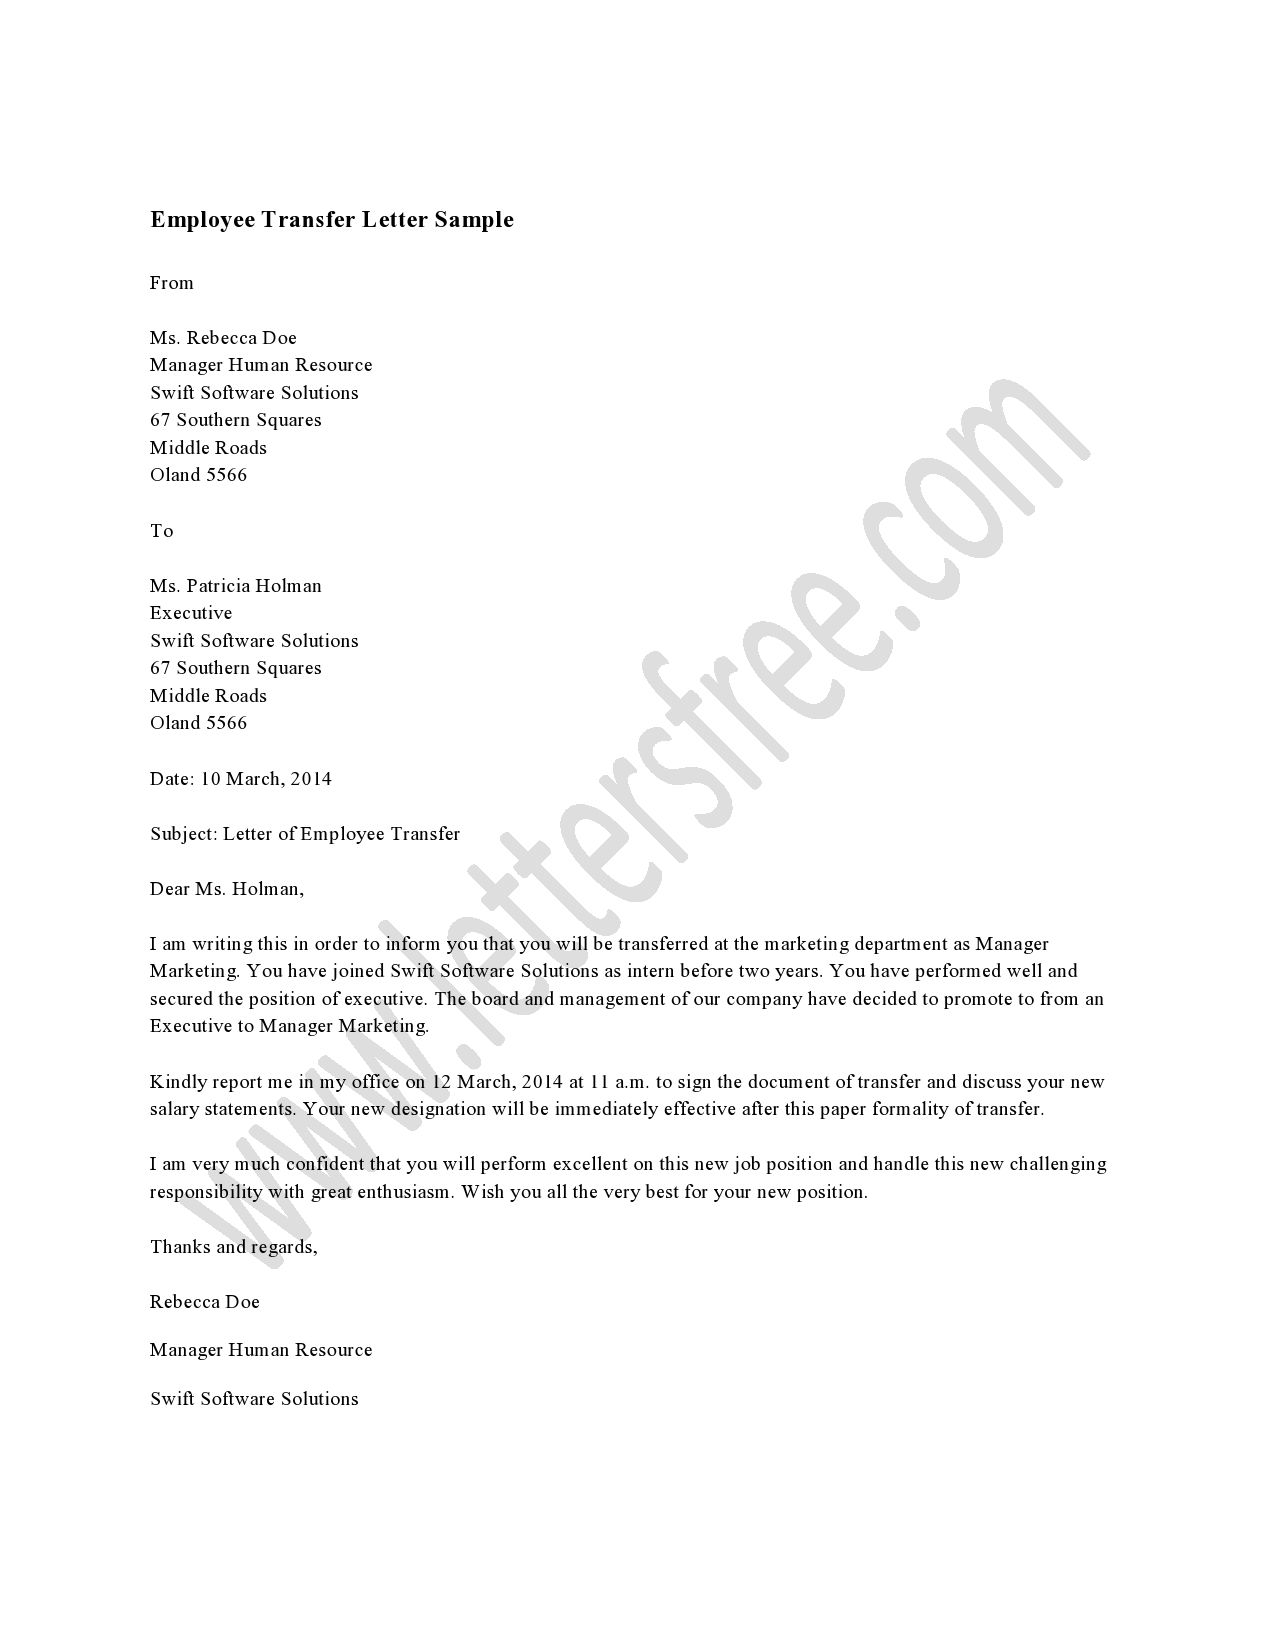 Employee transfer letter is written to notify the employee about his